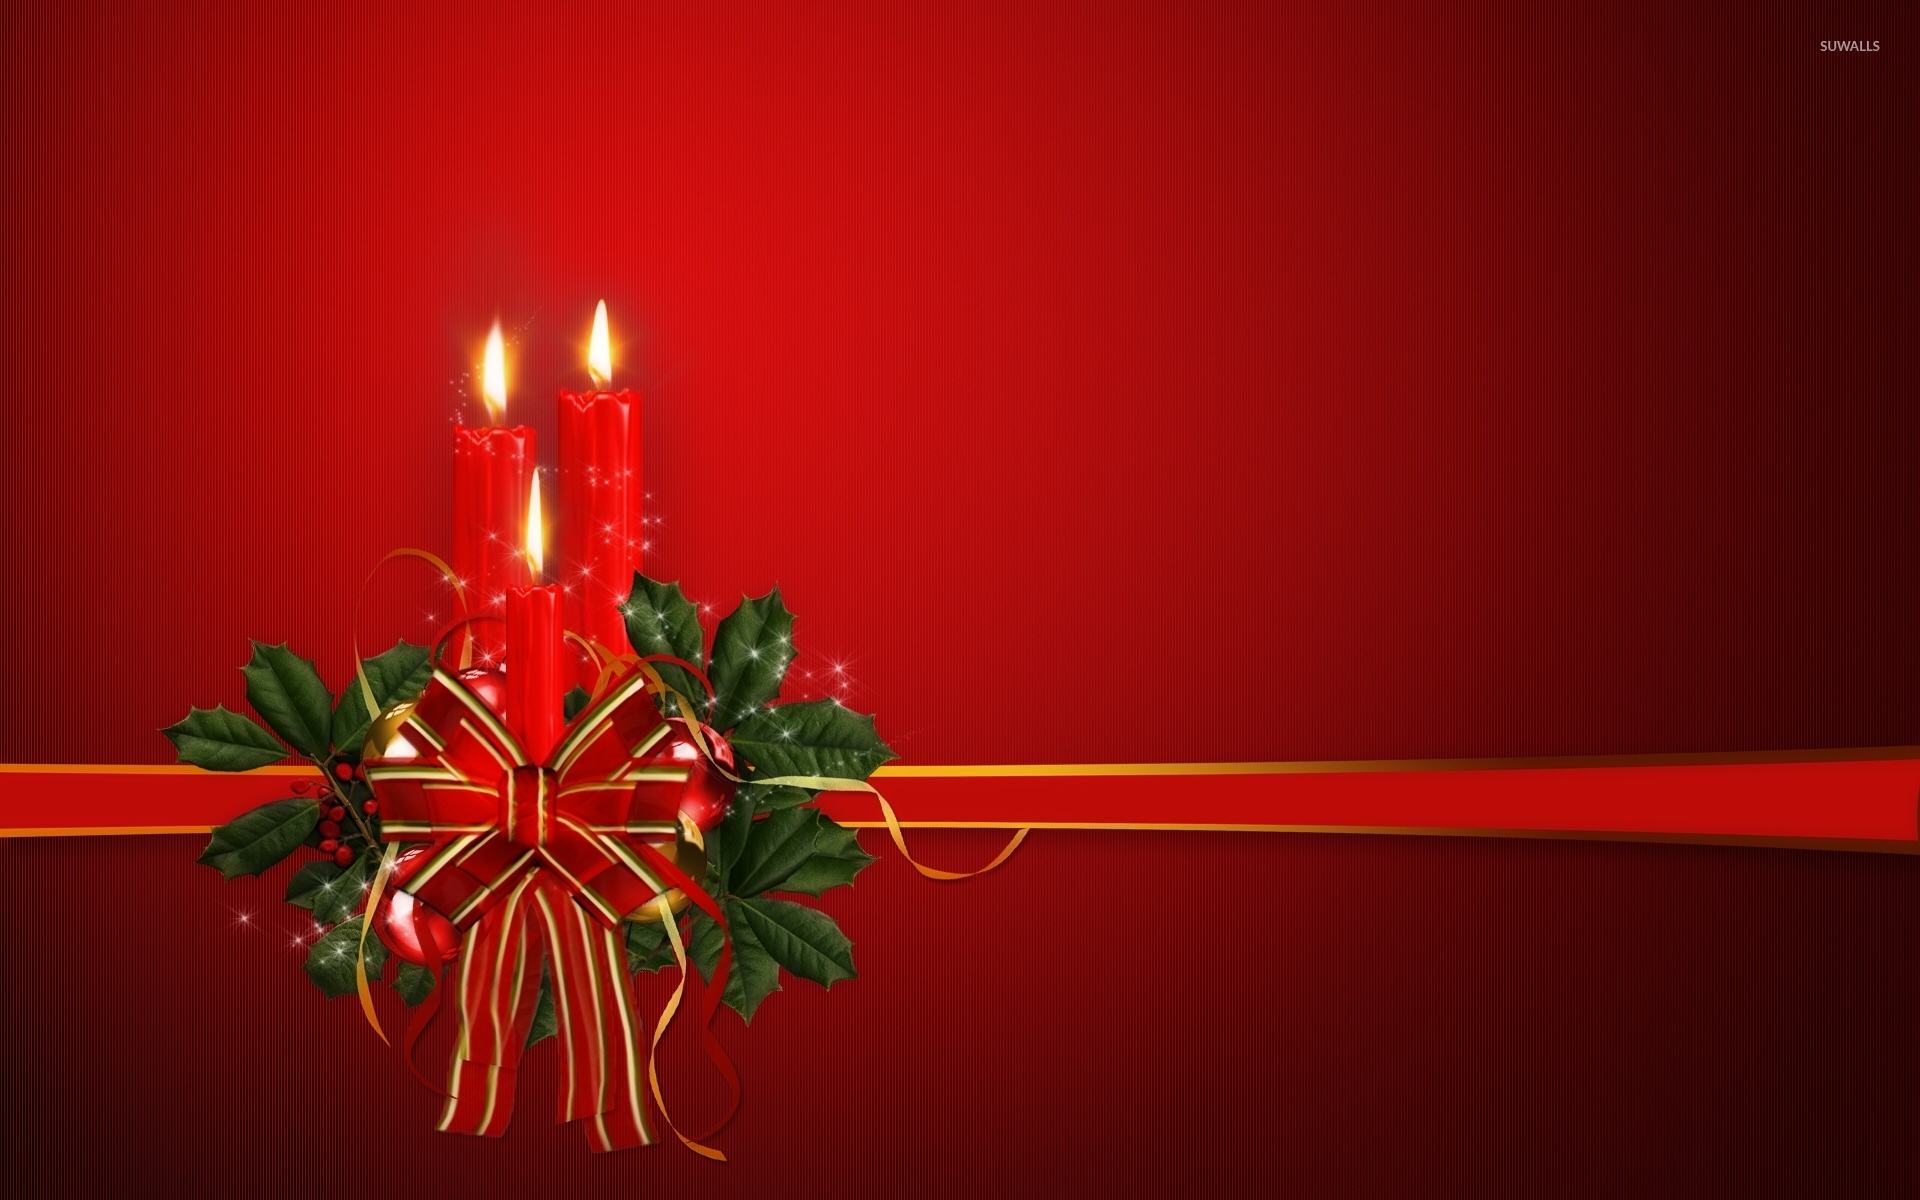 merry christmas wallpaper - holiday wallpapers - #126